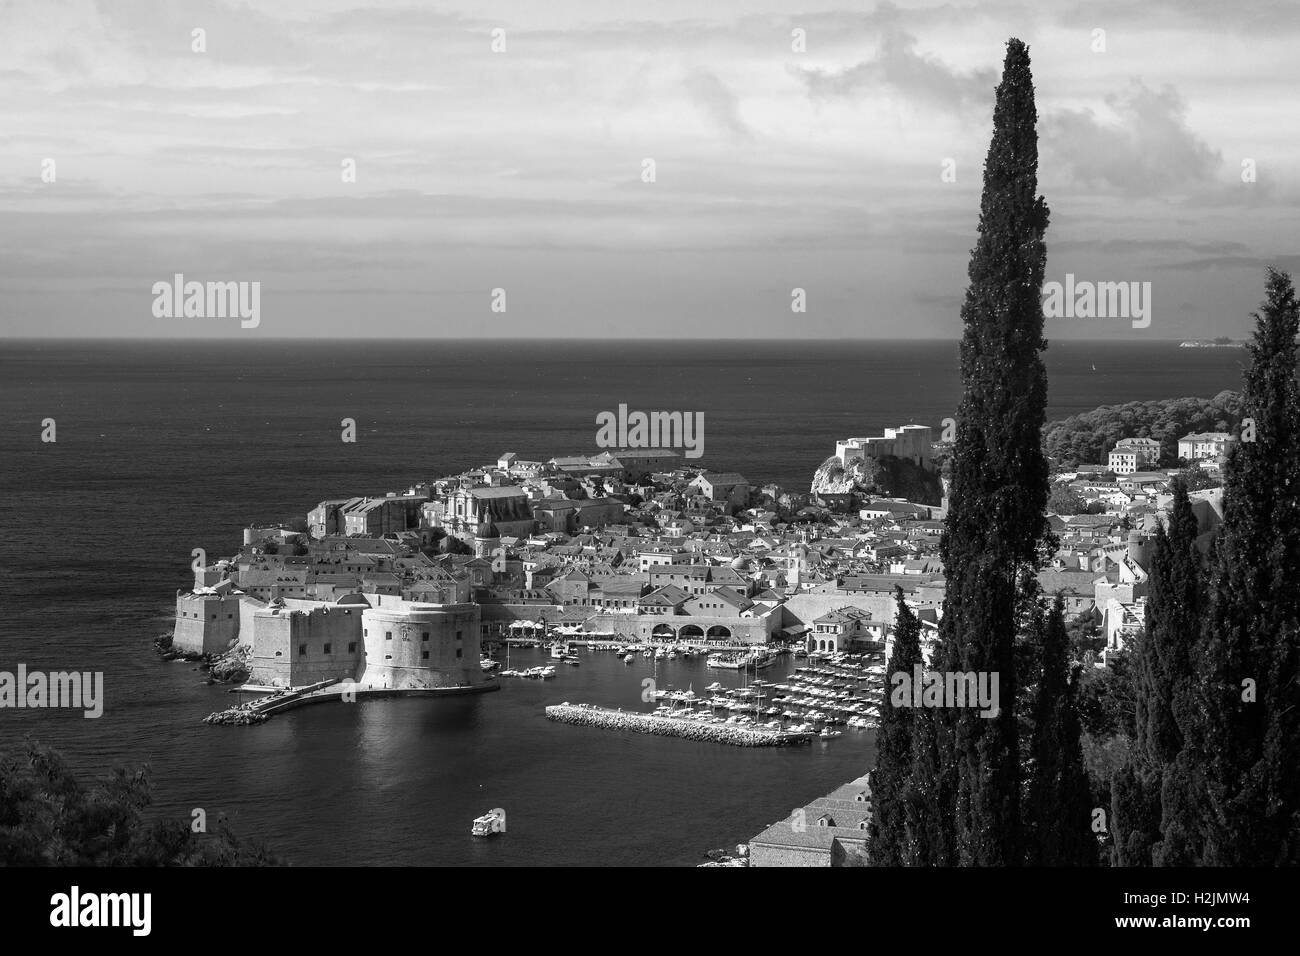 Stari grad (old town) and the old harbour, from Ulica Bruna Bušića, Dubrovnik, Croatia - Stock Image